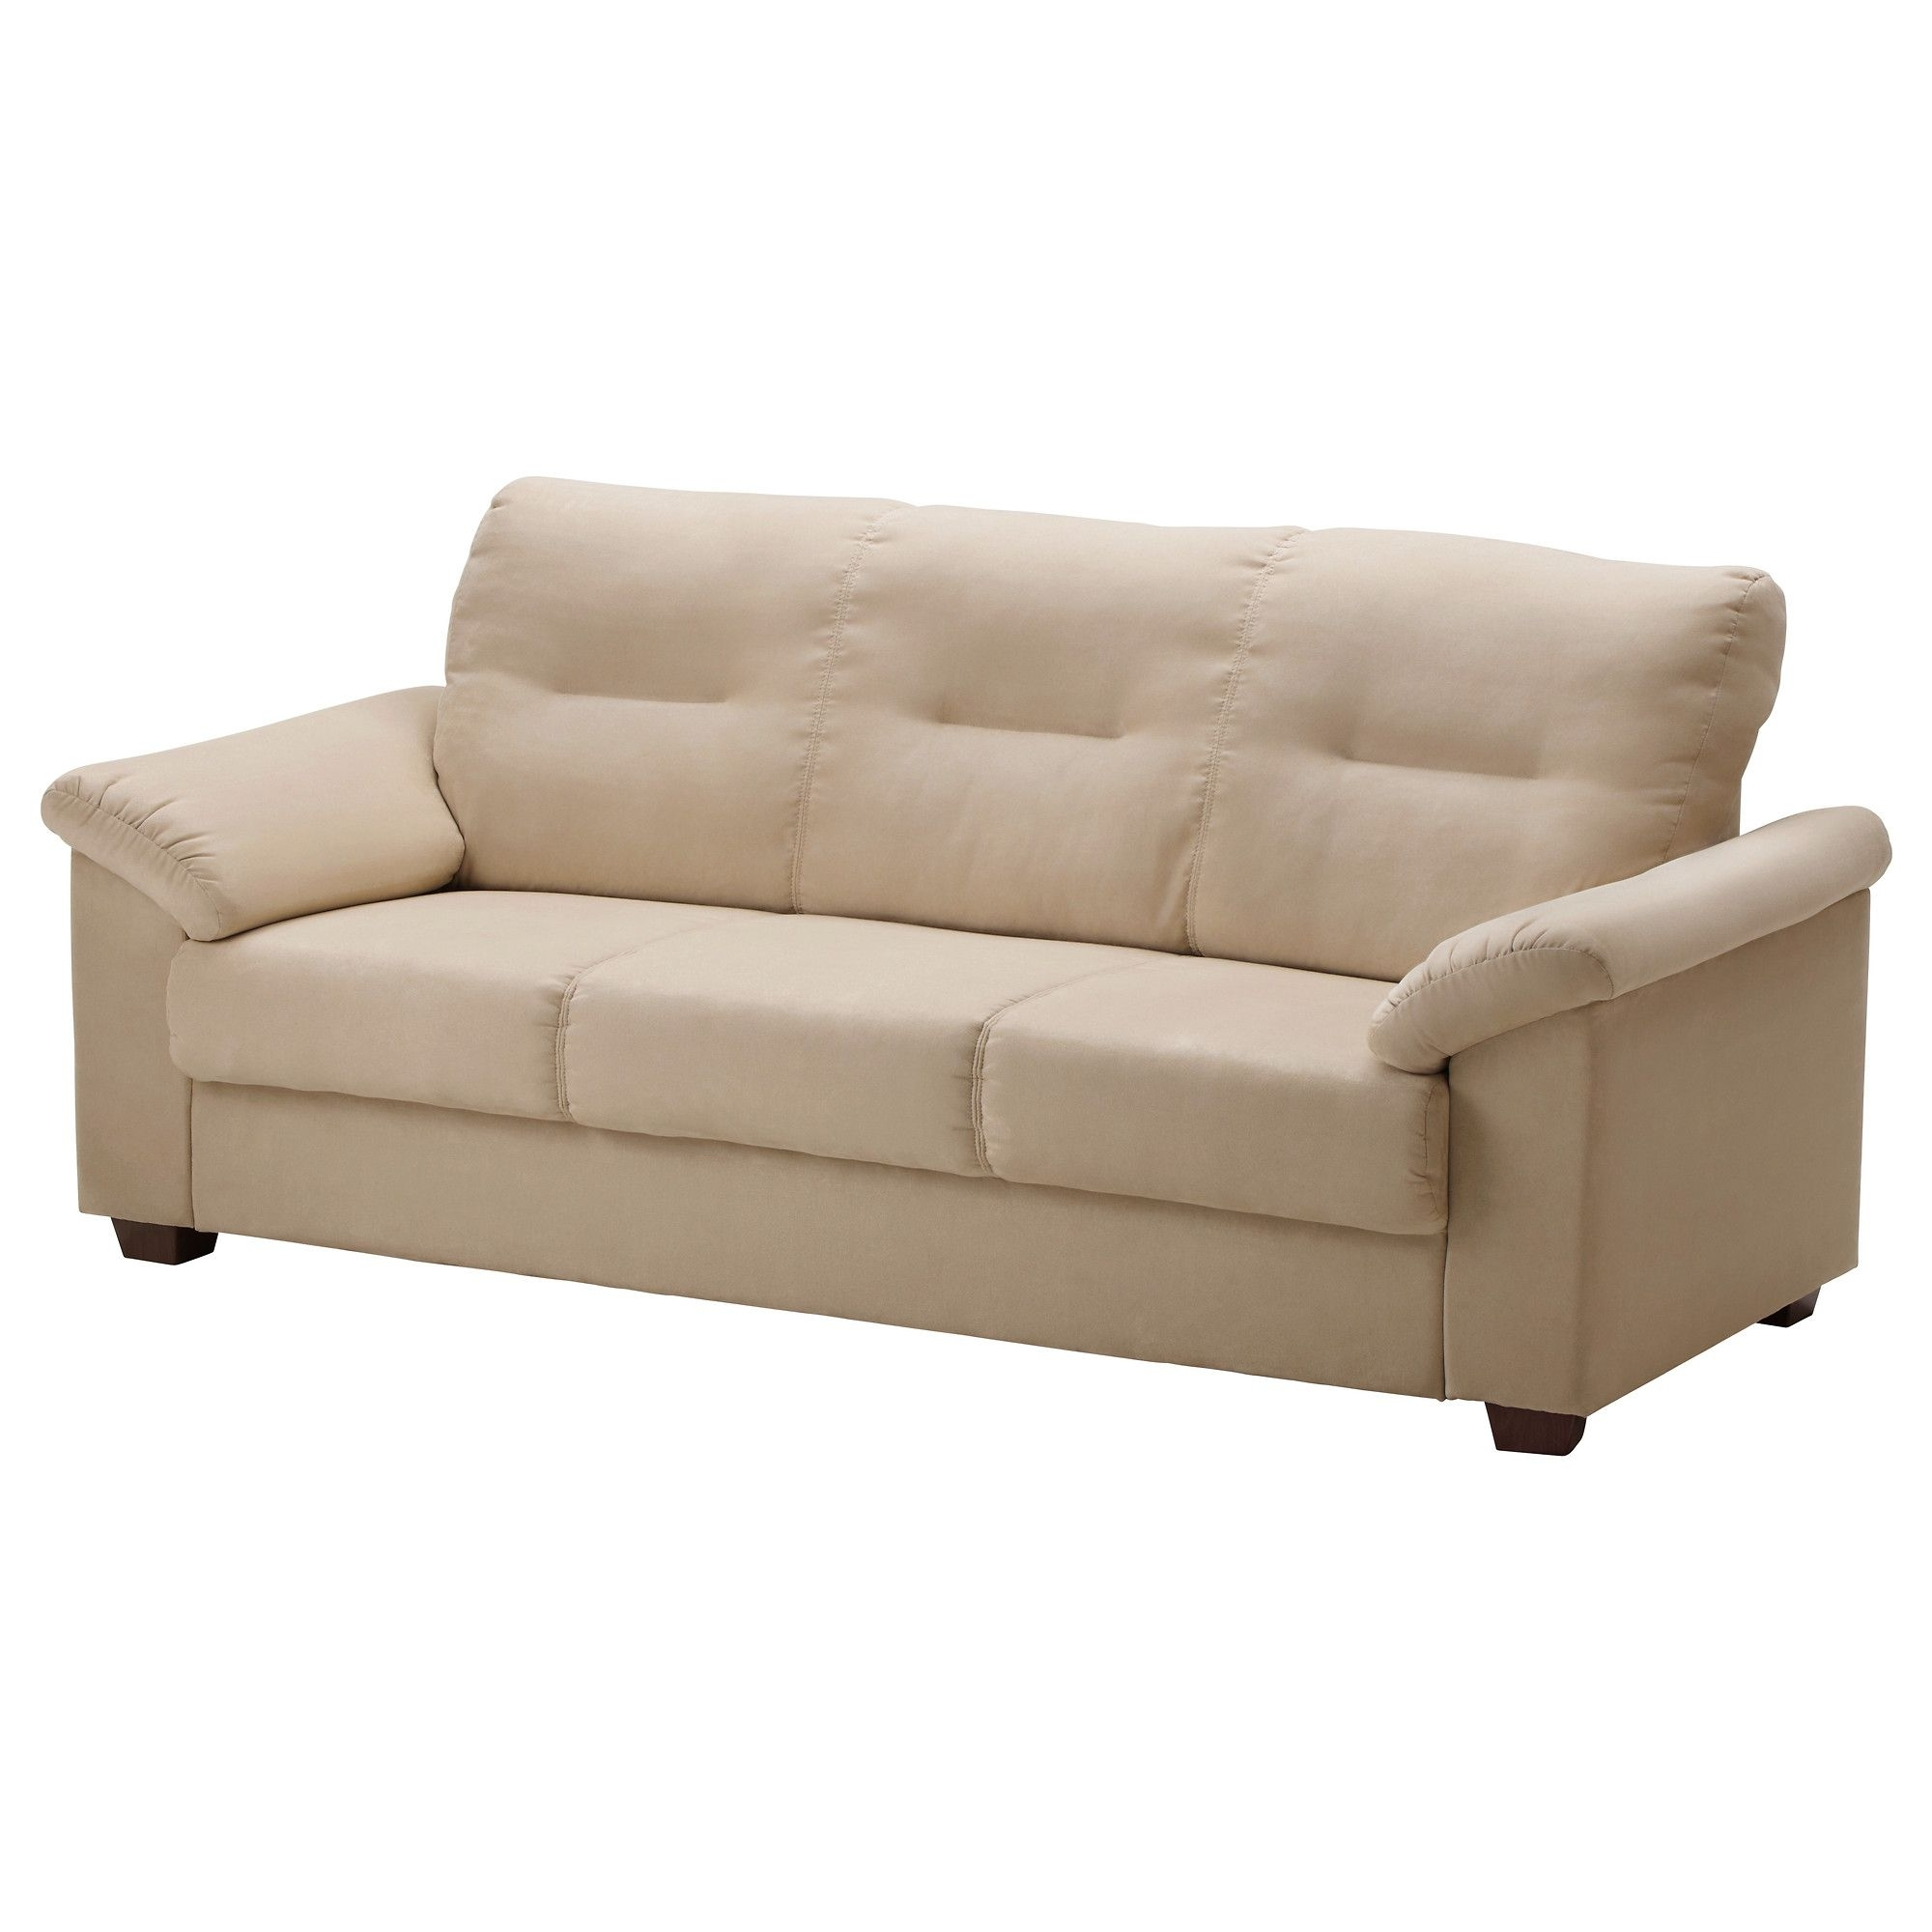 Ikea – Knislinge, Sofa, Kungsvik Sand, , The High Back Provides Good Within Taron 3 Piece Power Reclining Sectionals With Left Facing Console Loveseat (View 8 of 25)